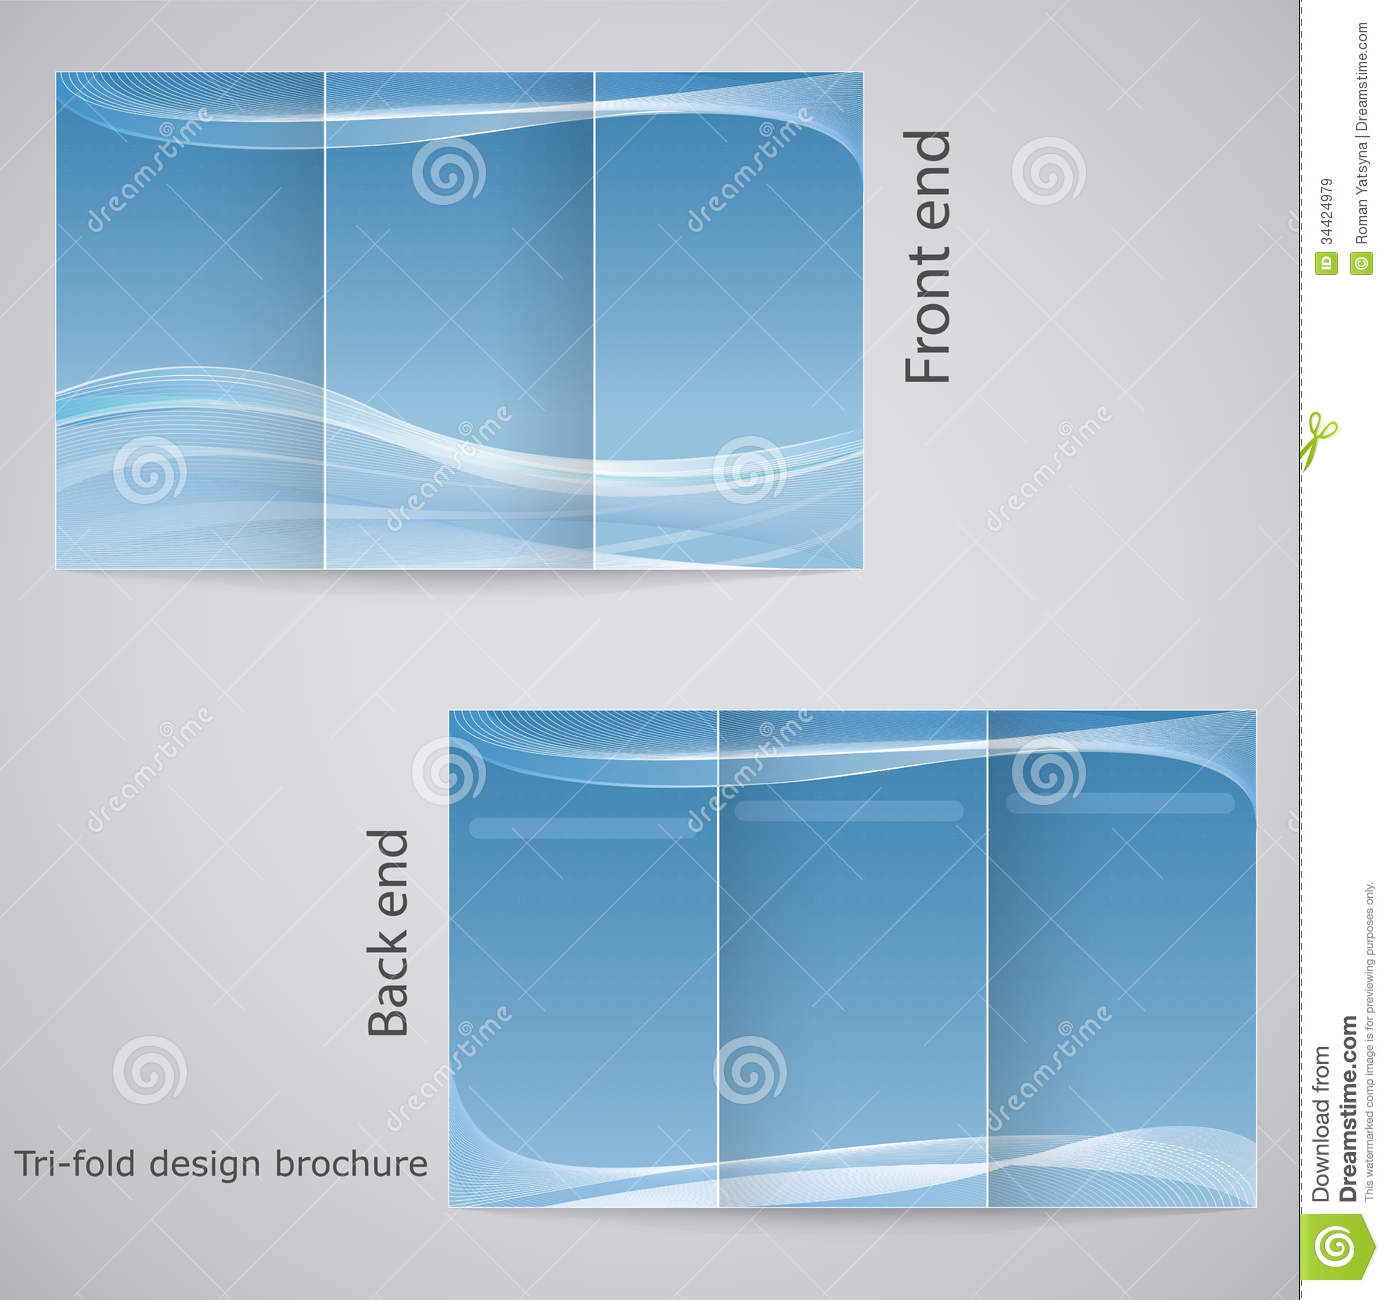 17 tri fold brochure design templates images tri fold for Free template for brochure tri fold